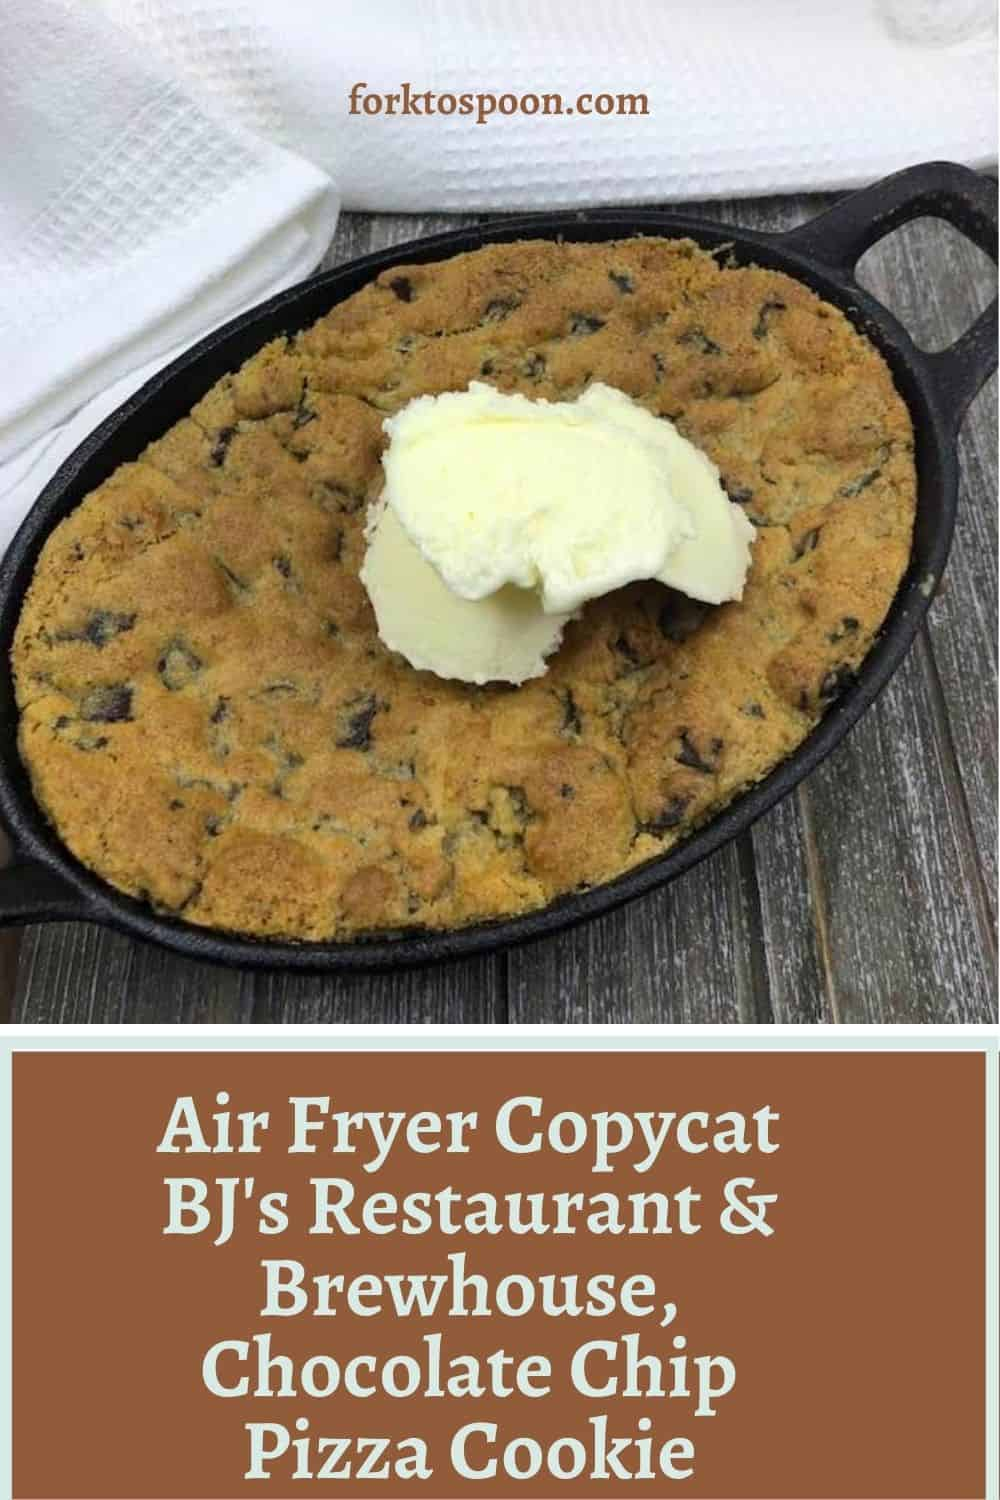 Air Fryer Copycat BJ's Restaurant & Brewhouse, Chocolate Chip Pizza Cookie